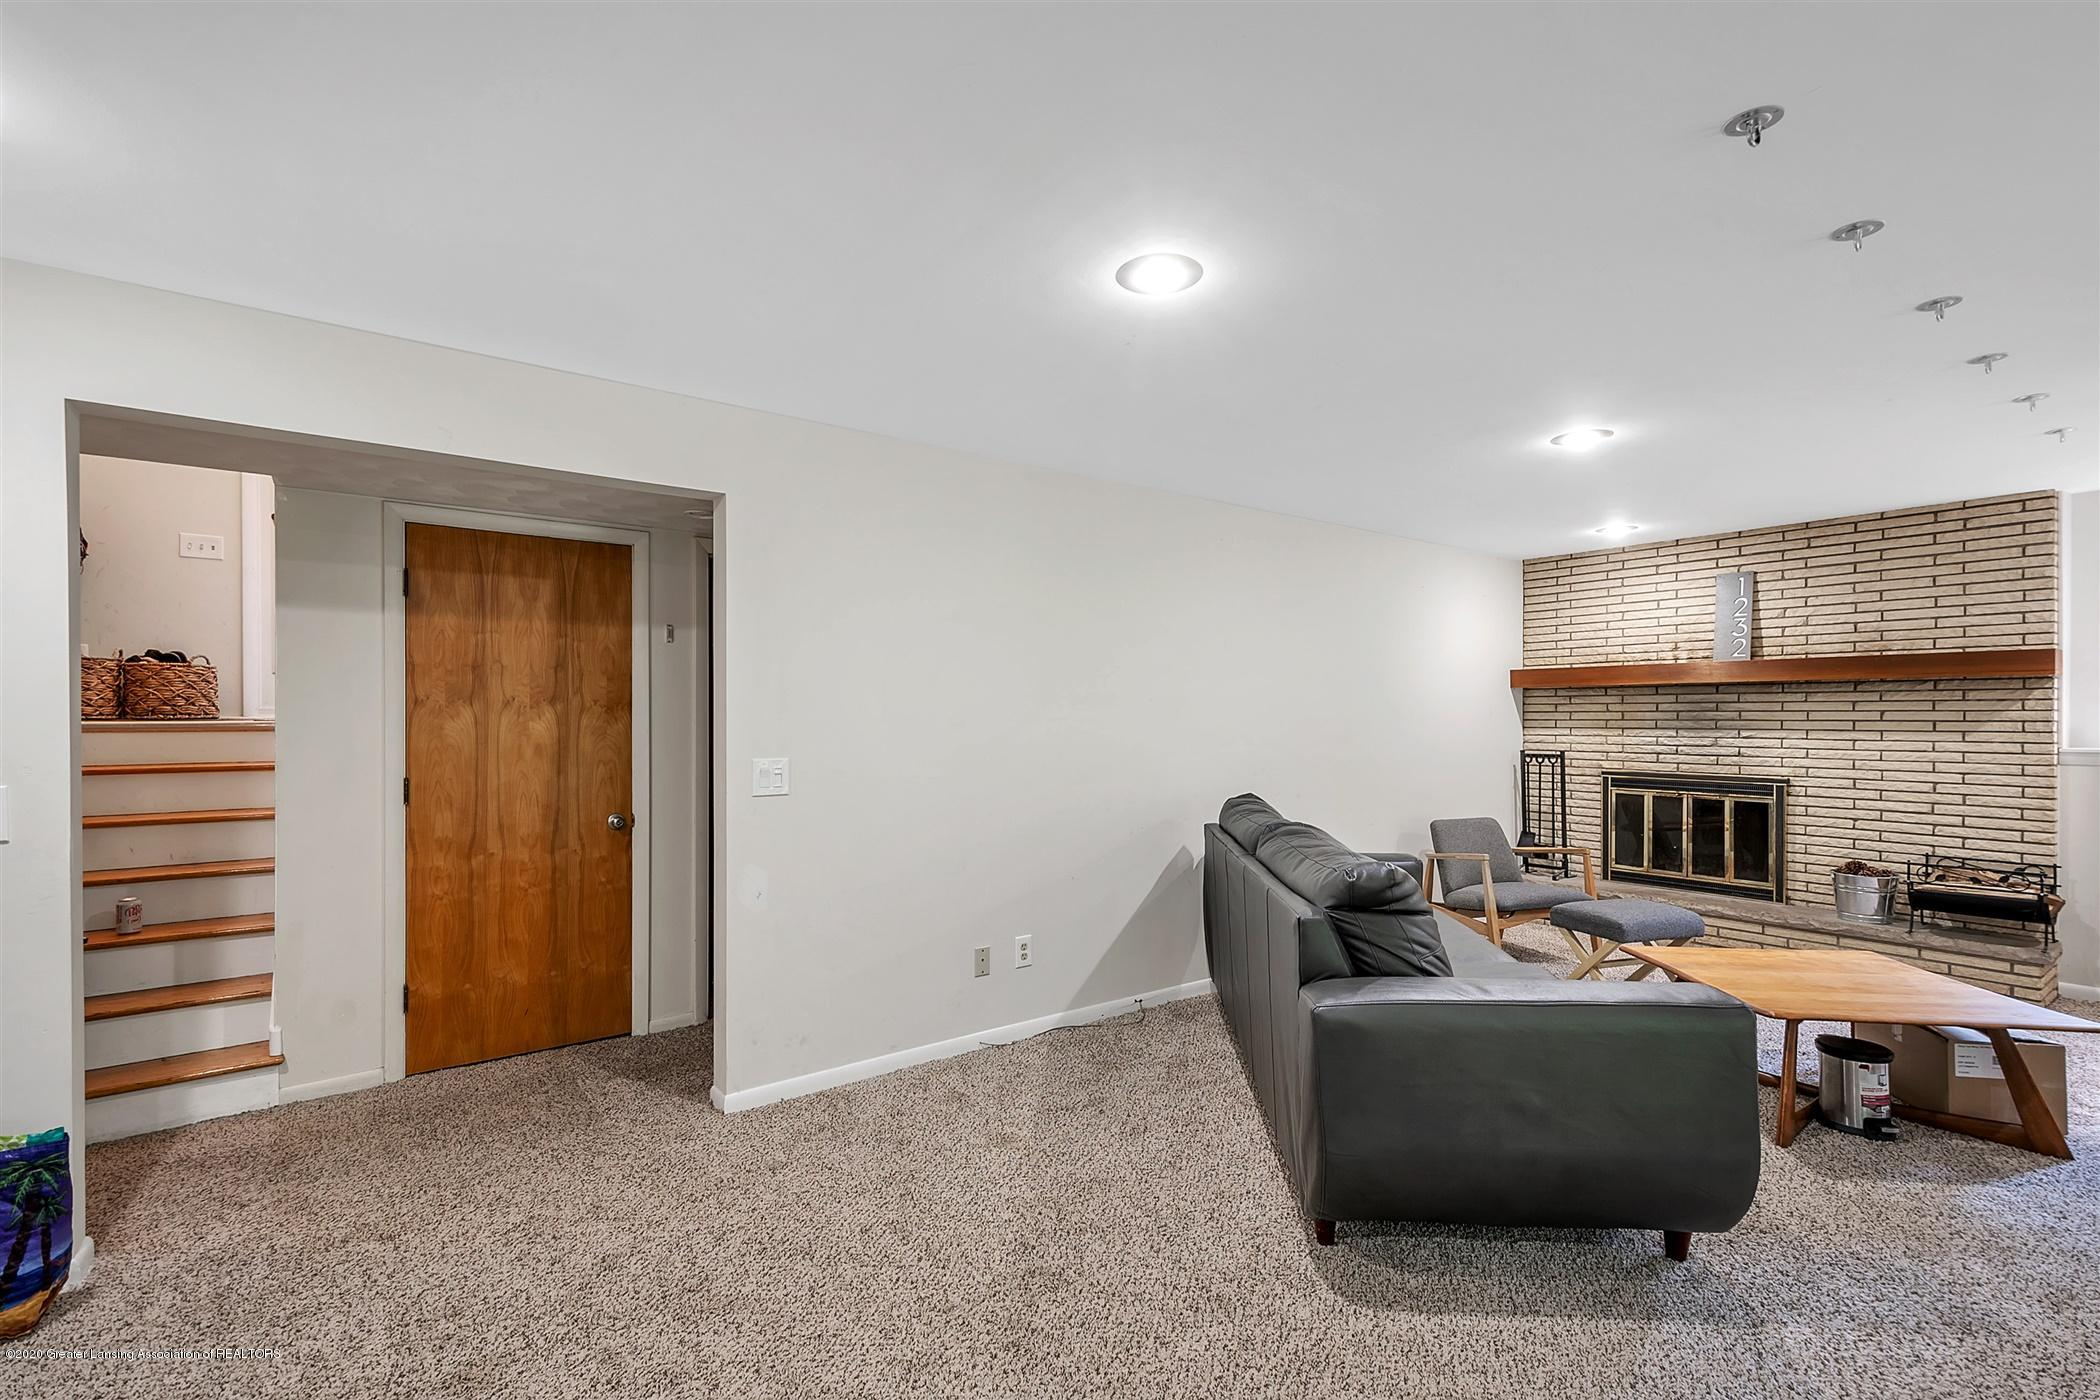 1232 Tanager Ln - 36-1232 Tanager Ln-WindowStill-Real - 37